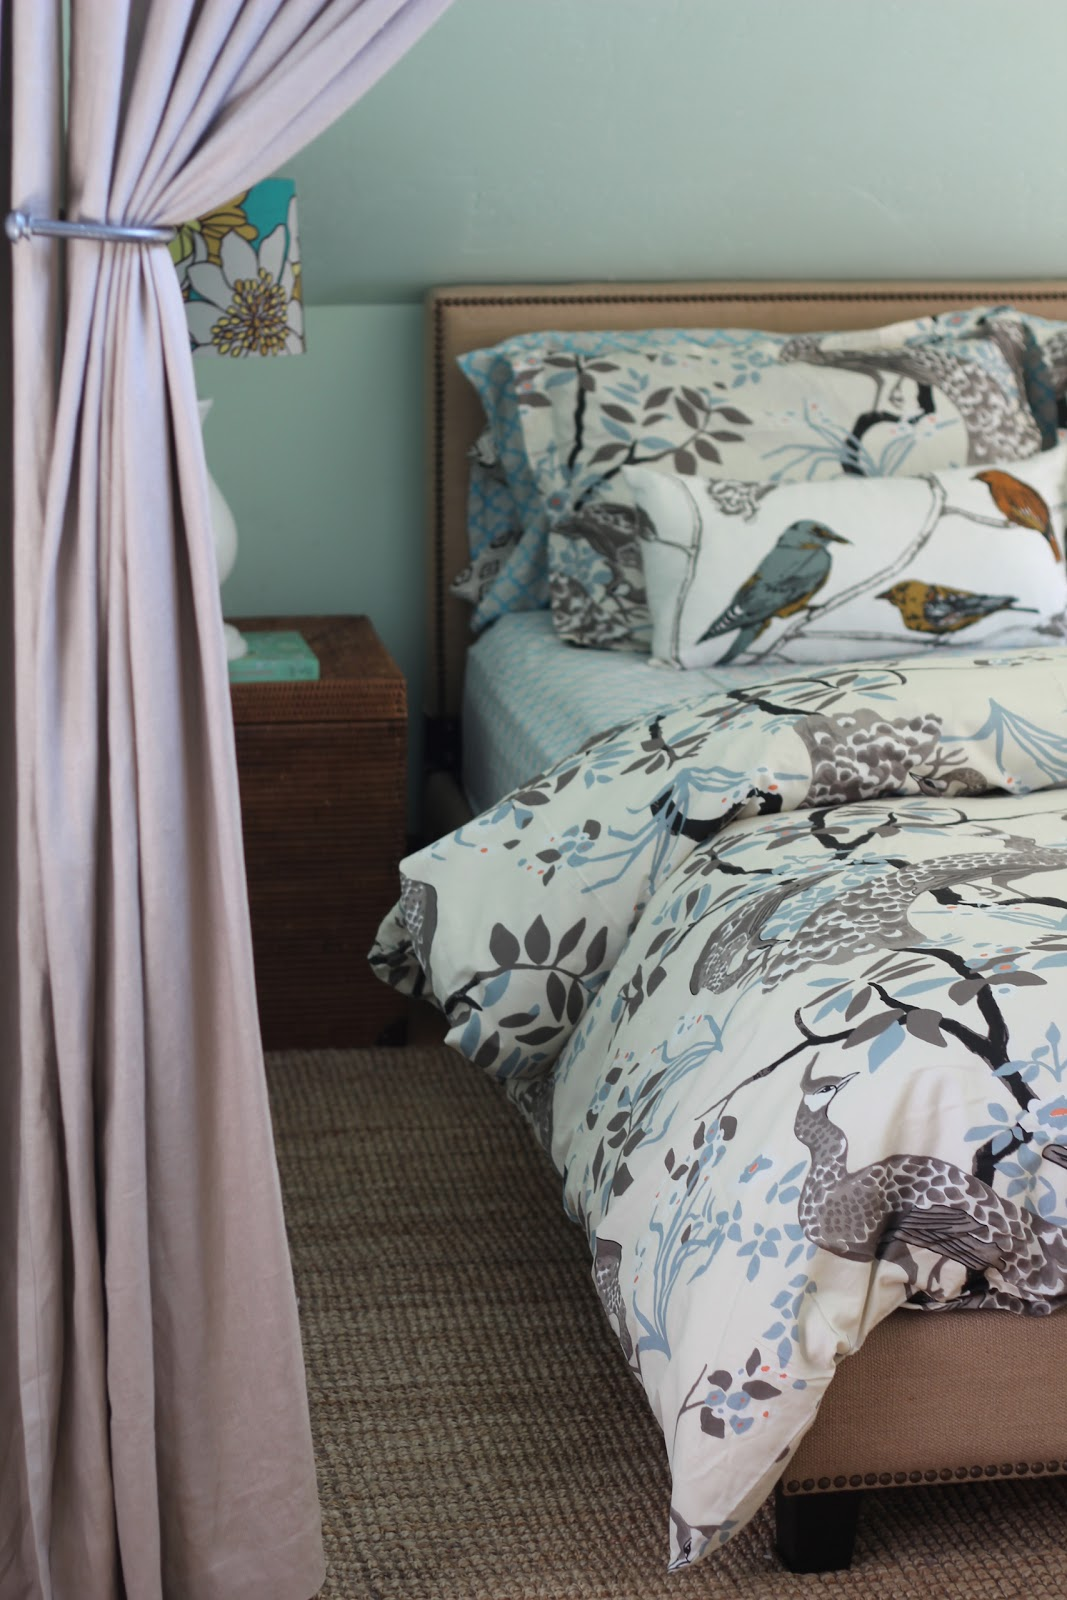 back on festive road new dwell studio peacock bedding - i do feel a bit disloyal because i loved my old duvet so much and it didhelp me win a design competition but the new duvet is so fresh and cleanlooking